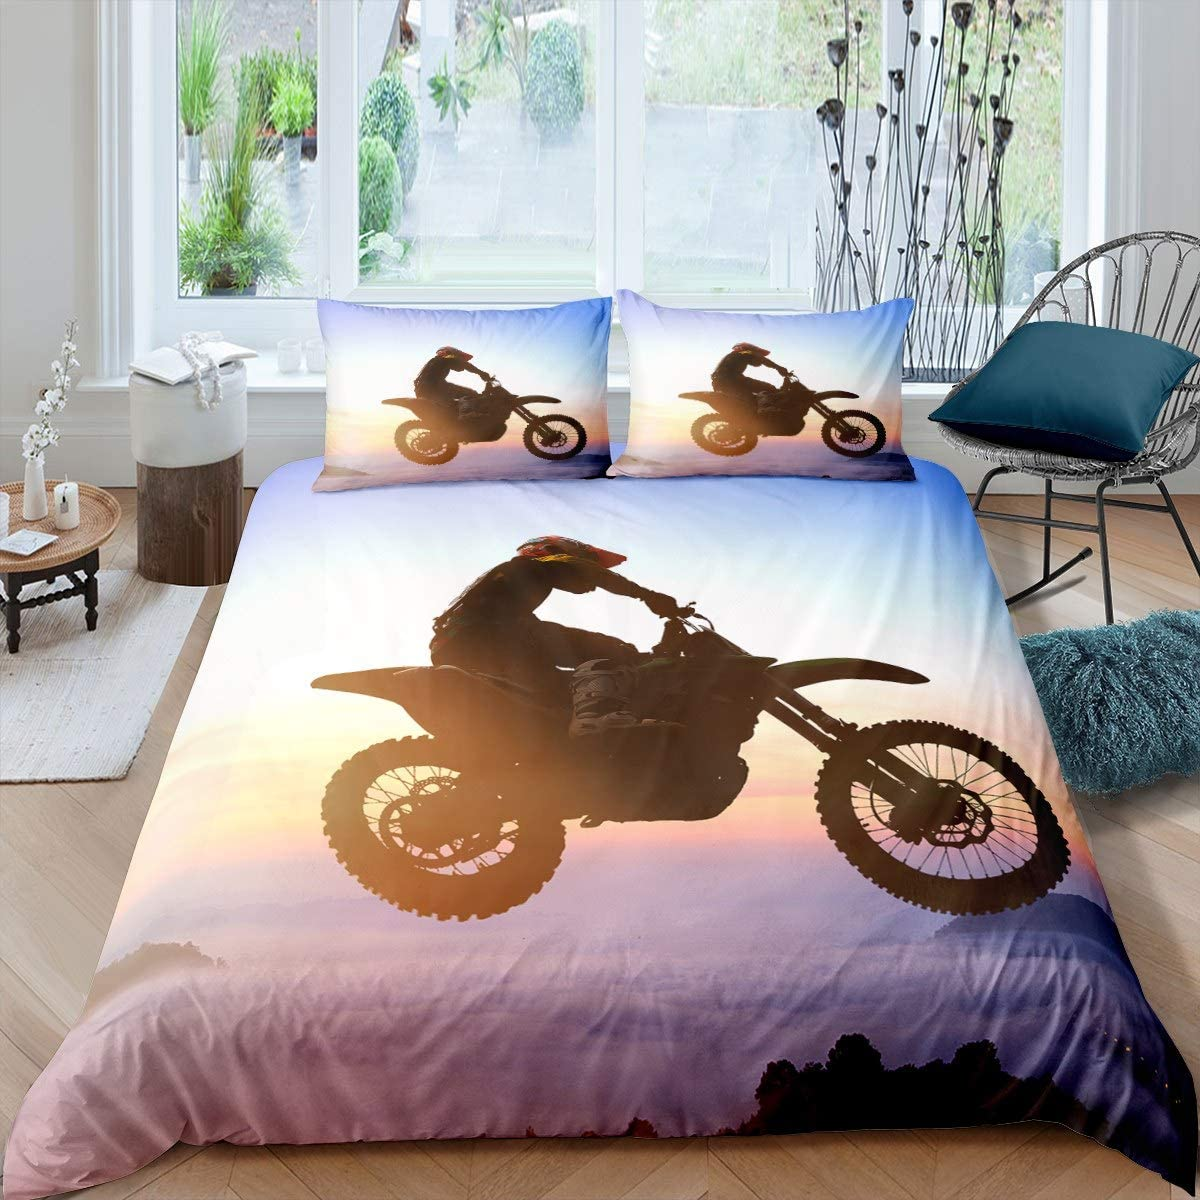 Motorcycle Duvet Cover Extreme Sports Theme Decor King Size Bedding Duvet Cover Motocross Printed Pattern Comforter Cover for Adult Kids